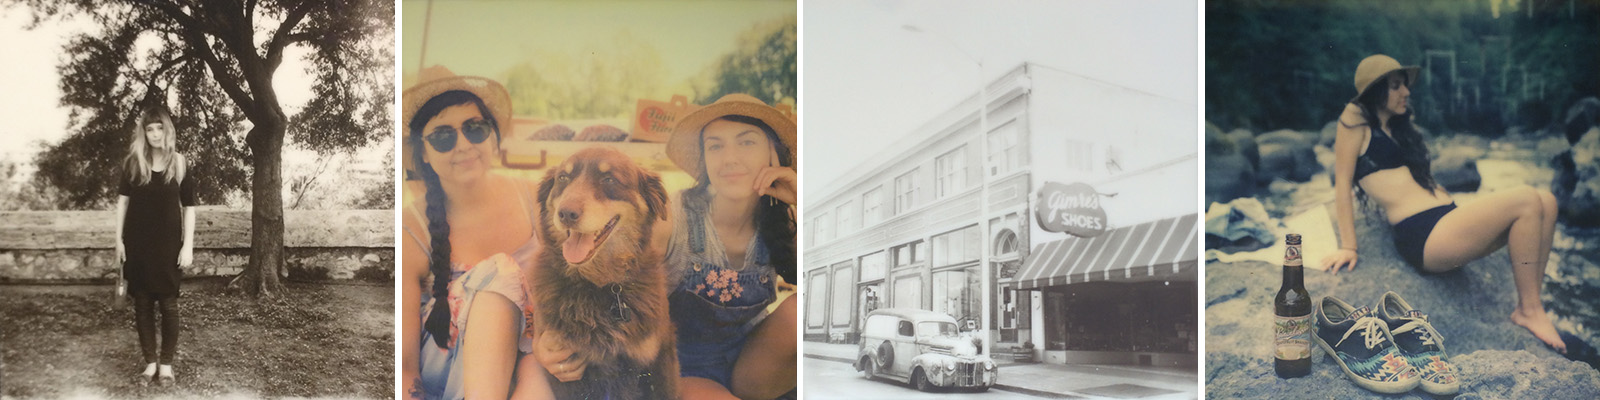 SLR670m Review - Sample images from Impossible Project Gen2.0 Polaroid Films